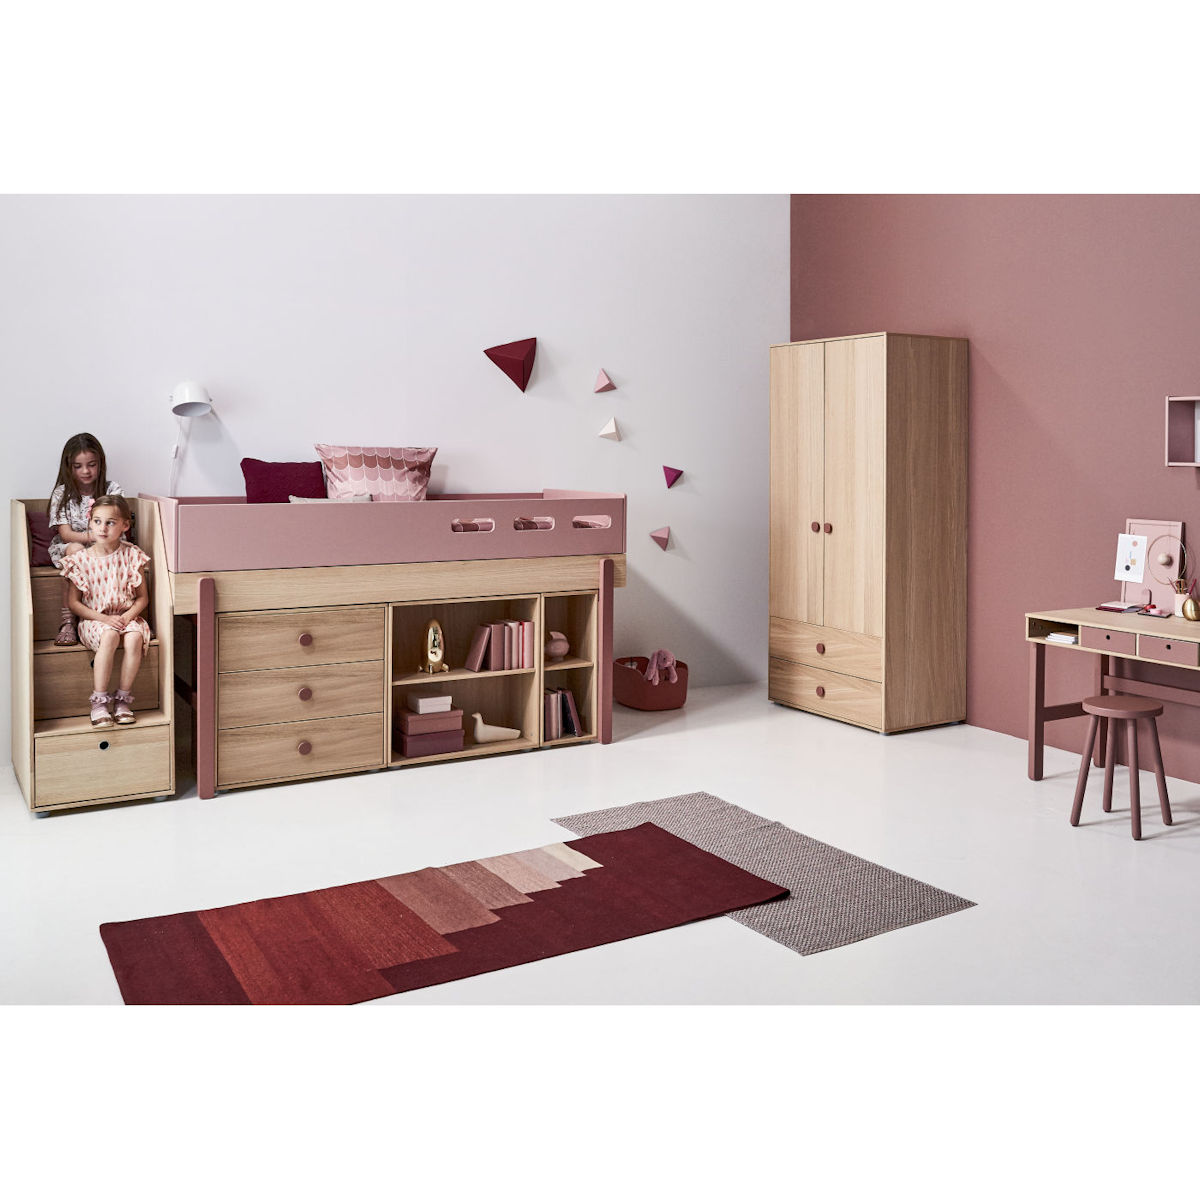 flexa popsicle halbhohes bett 90x200 kiwi 90 10765 31. Black Bedroom Furniture Sets. Home Design Ideas